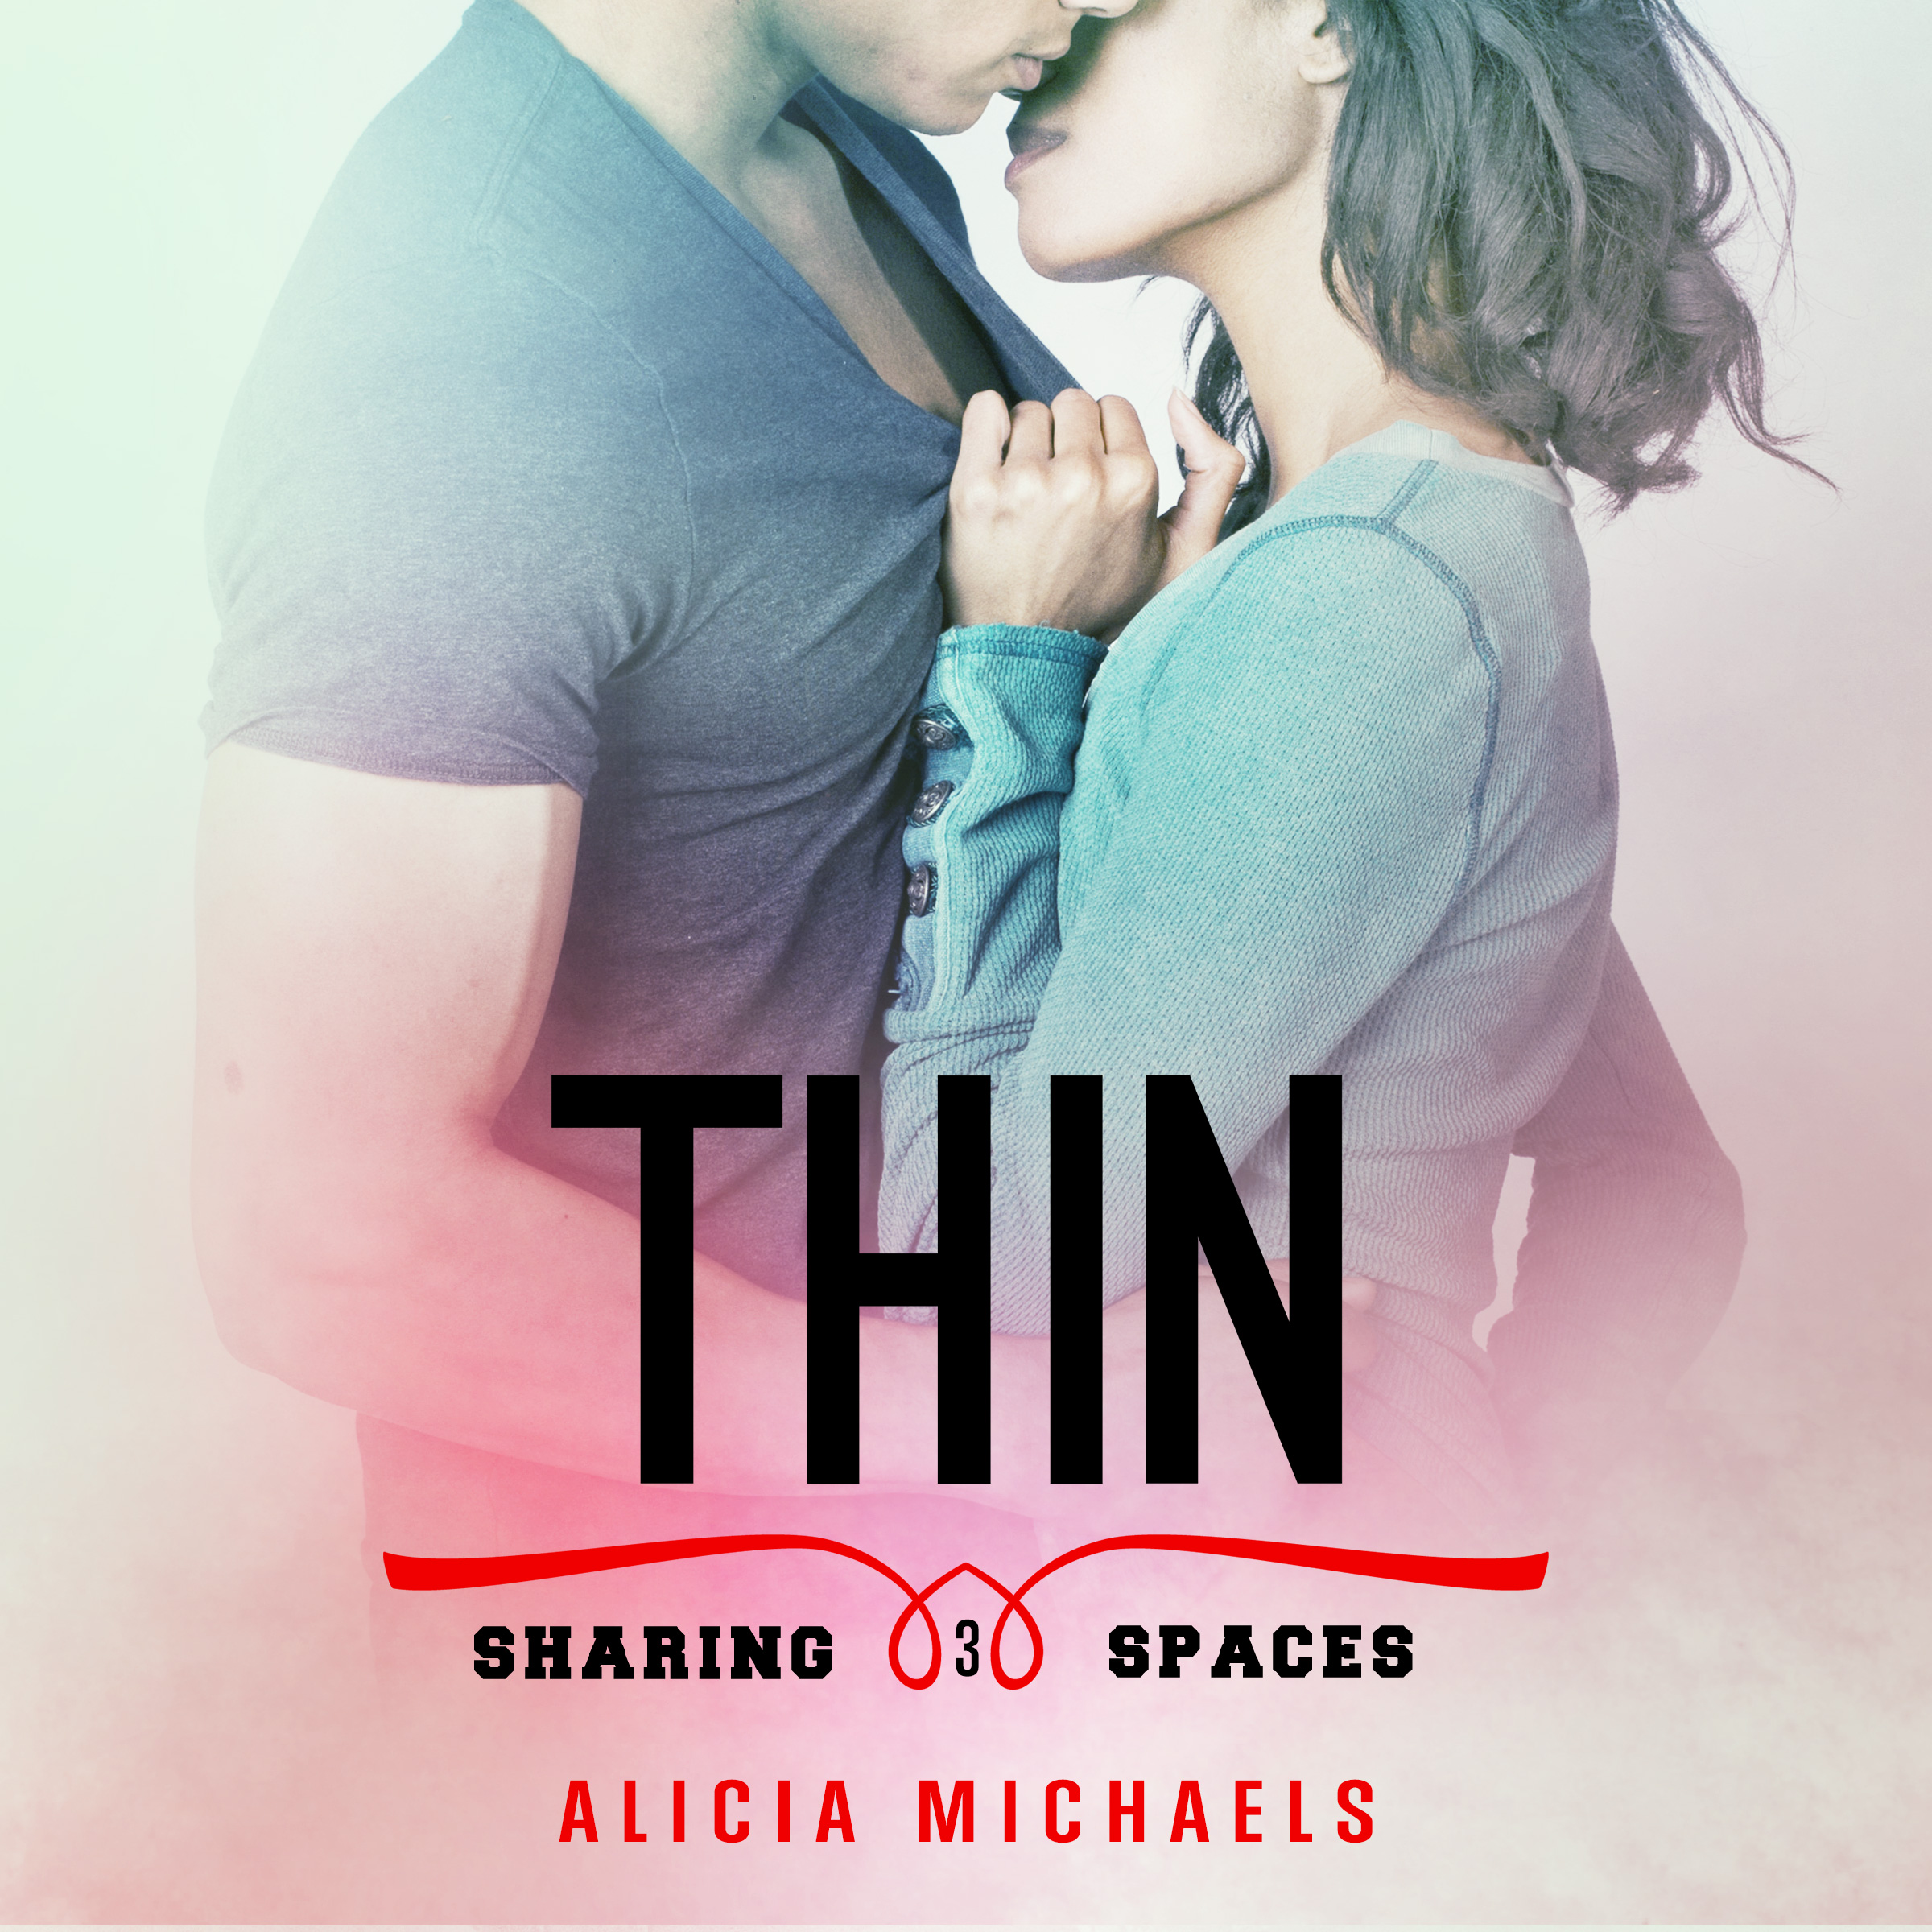 Book Three: Thin